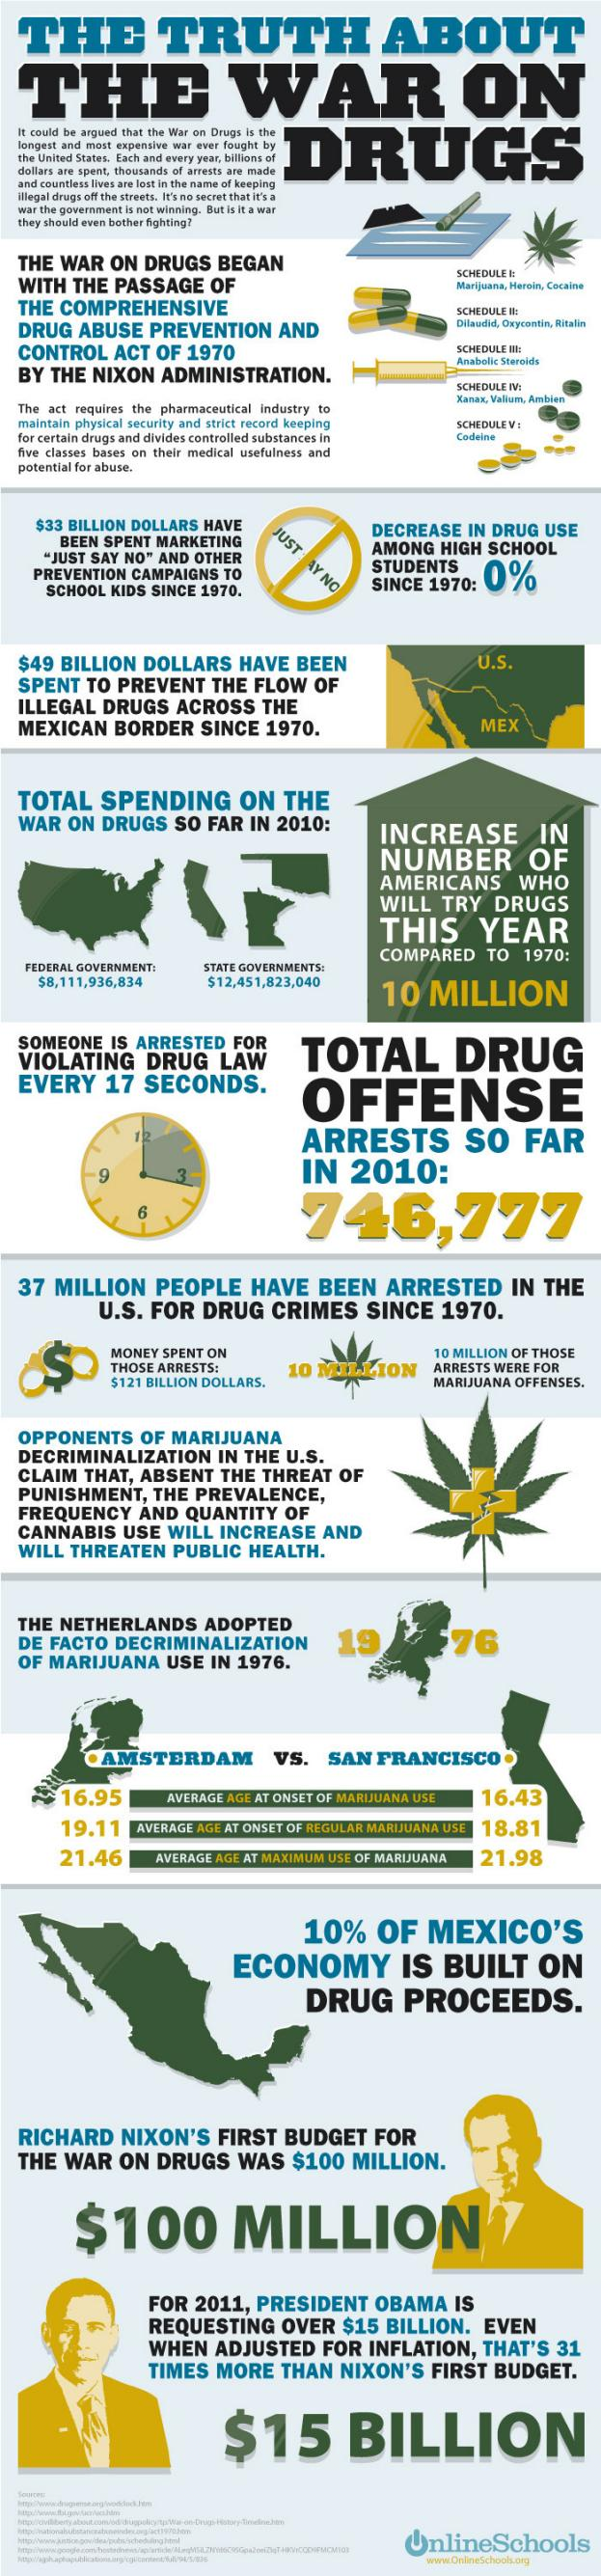 Drug Use and Statistics in United States